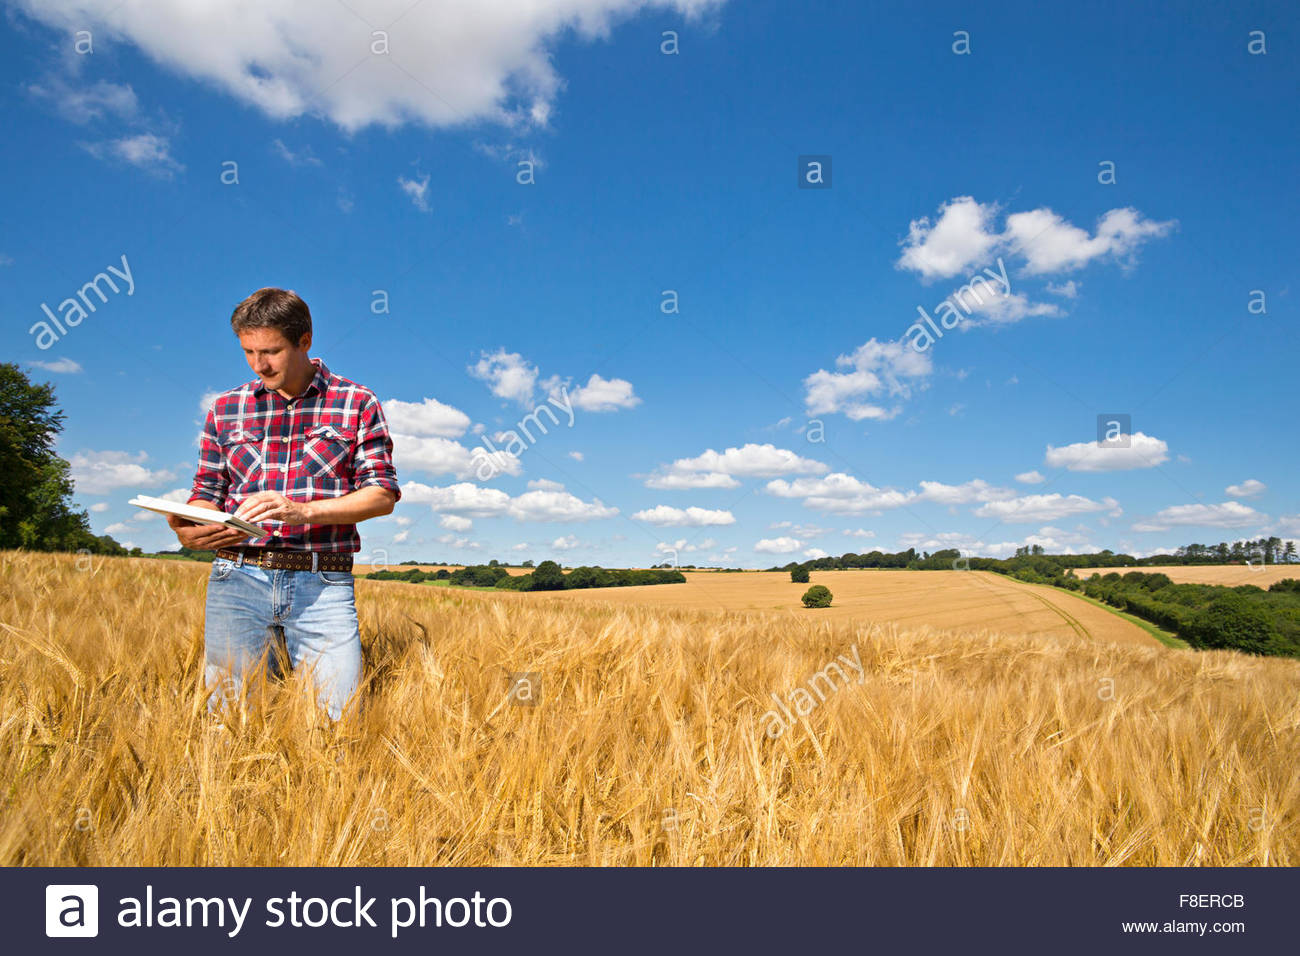 Farmer using digital tablet in rural crop field orge ensoleillée en été Photo Stock